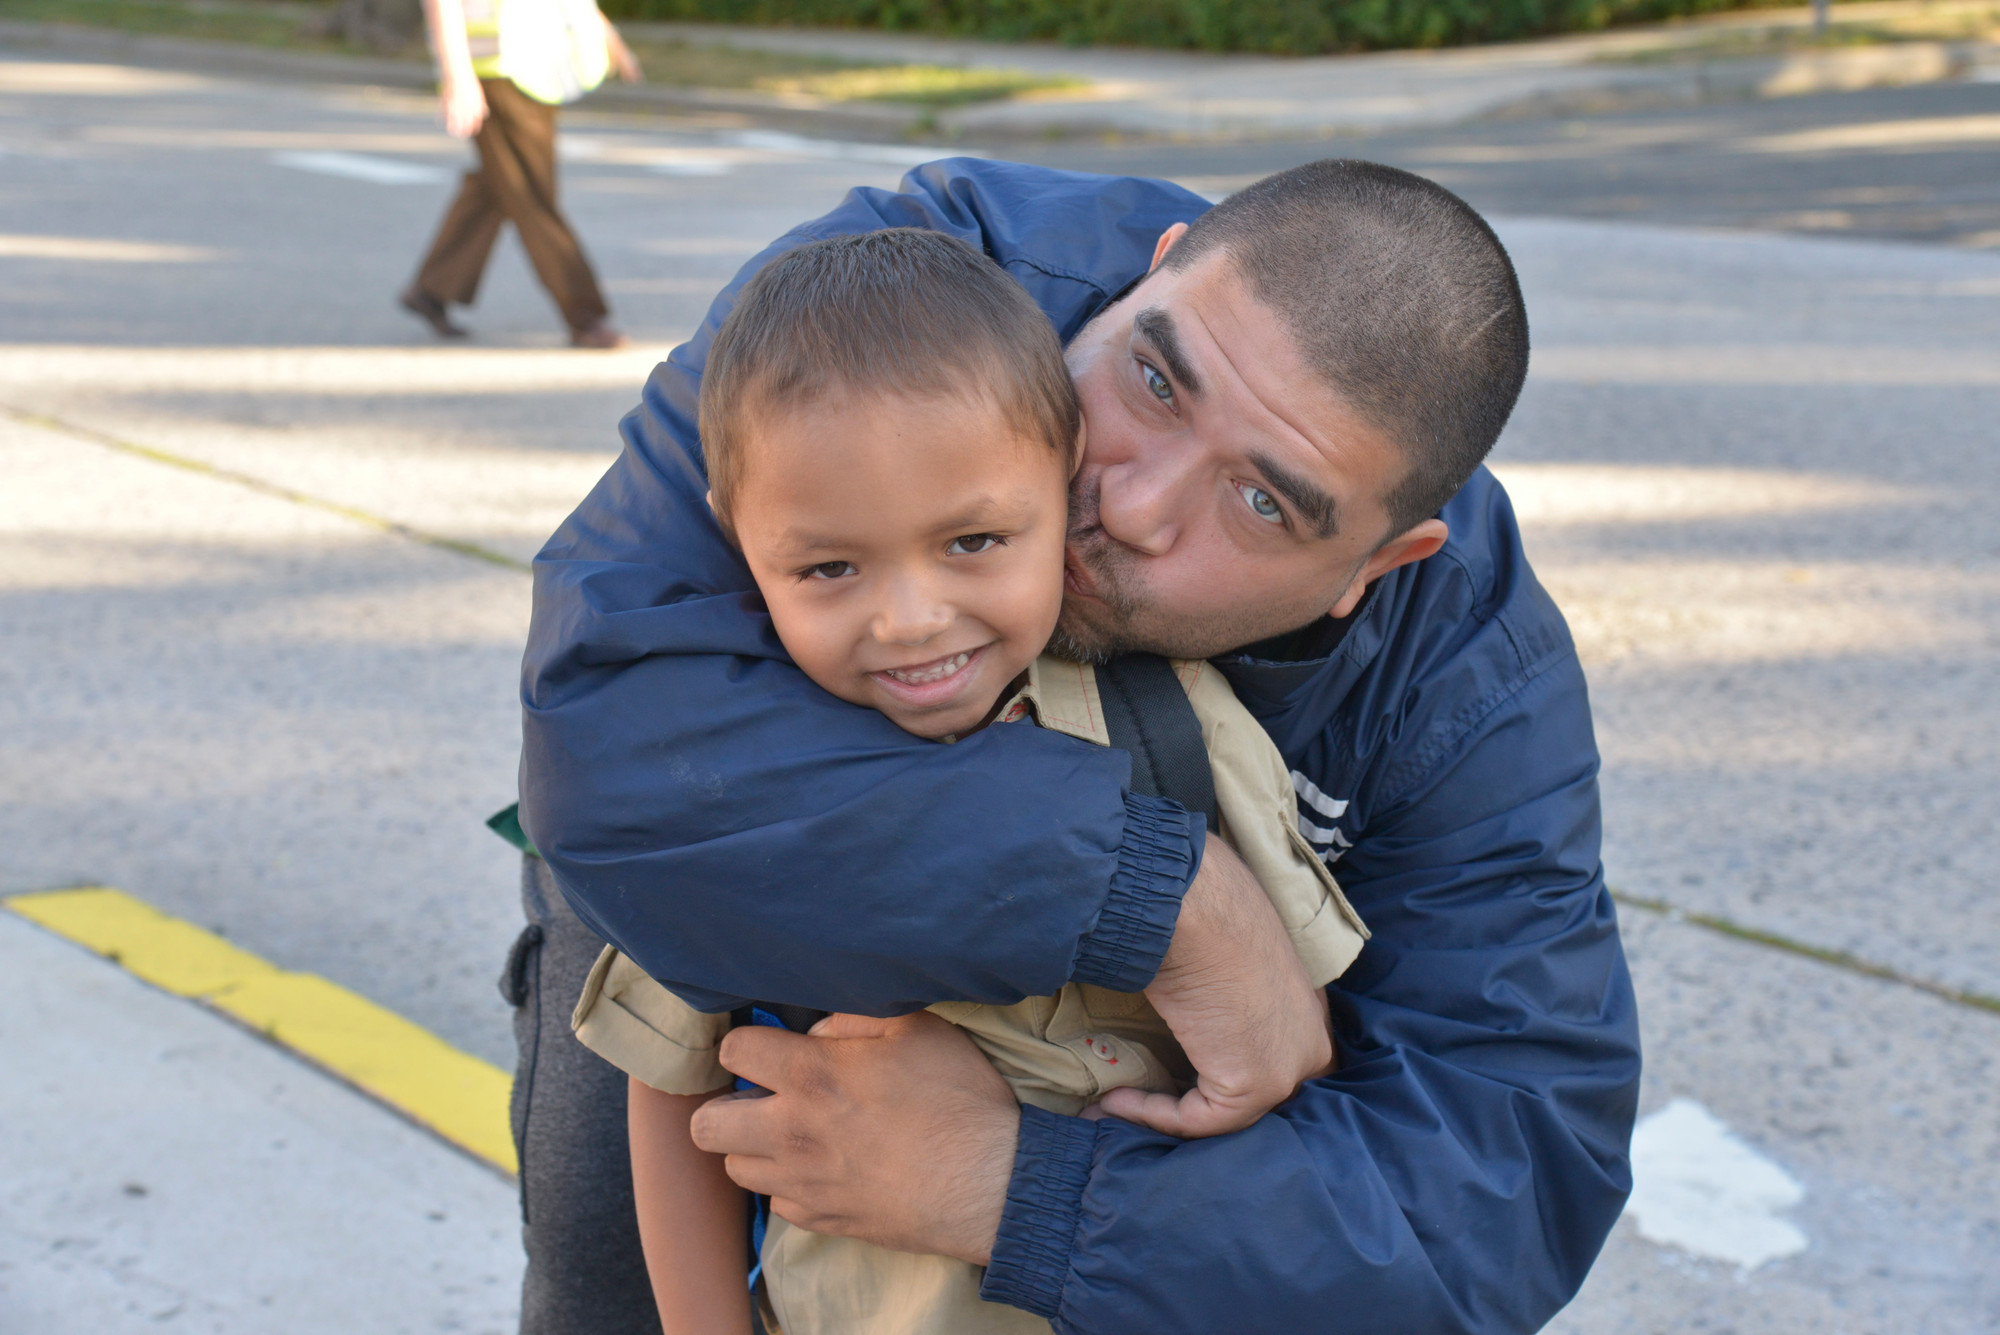 Miguel Cordero, 5, got a goodbye kiss from his father Raul before his first day at school.